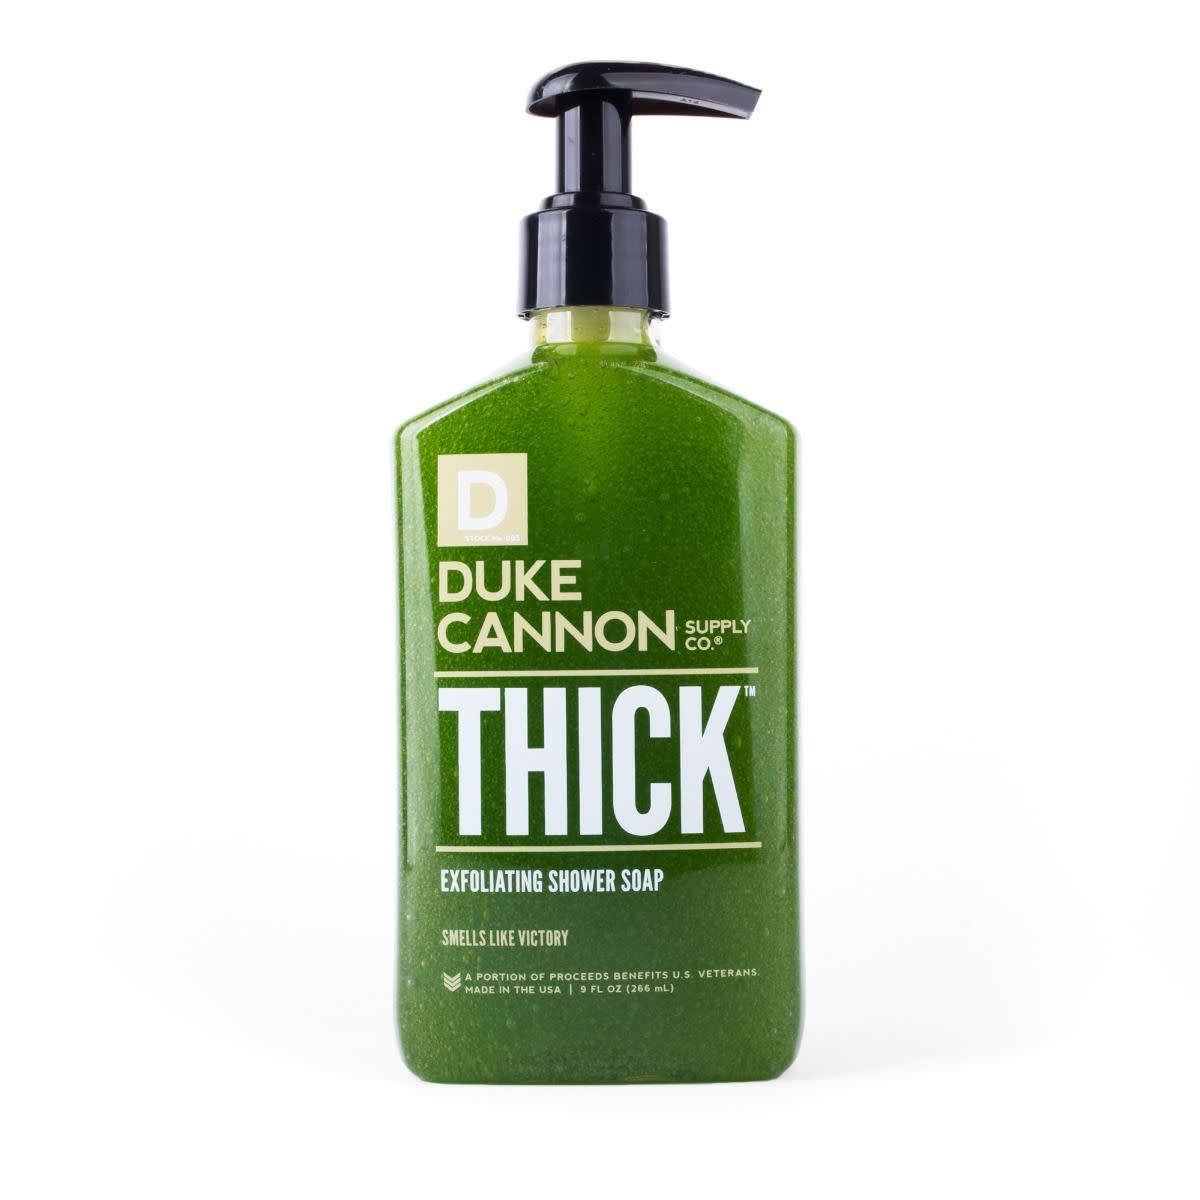 Duke Cannon Victory Thick Exfoliating Shower Soap